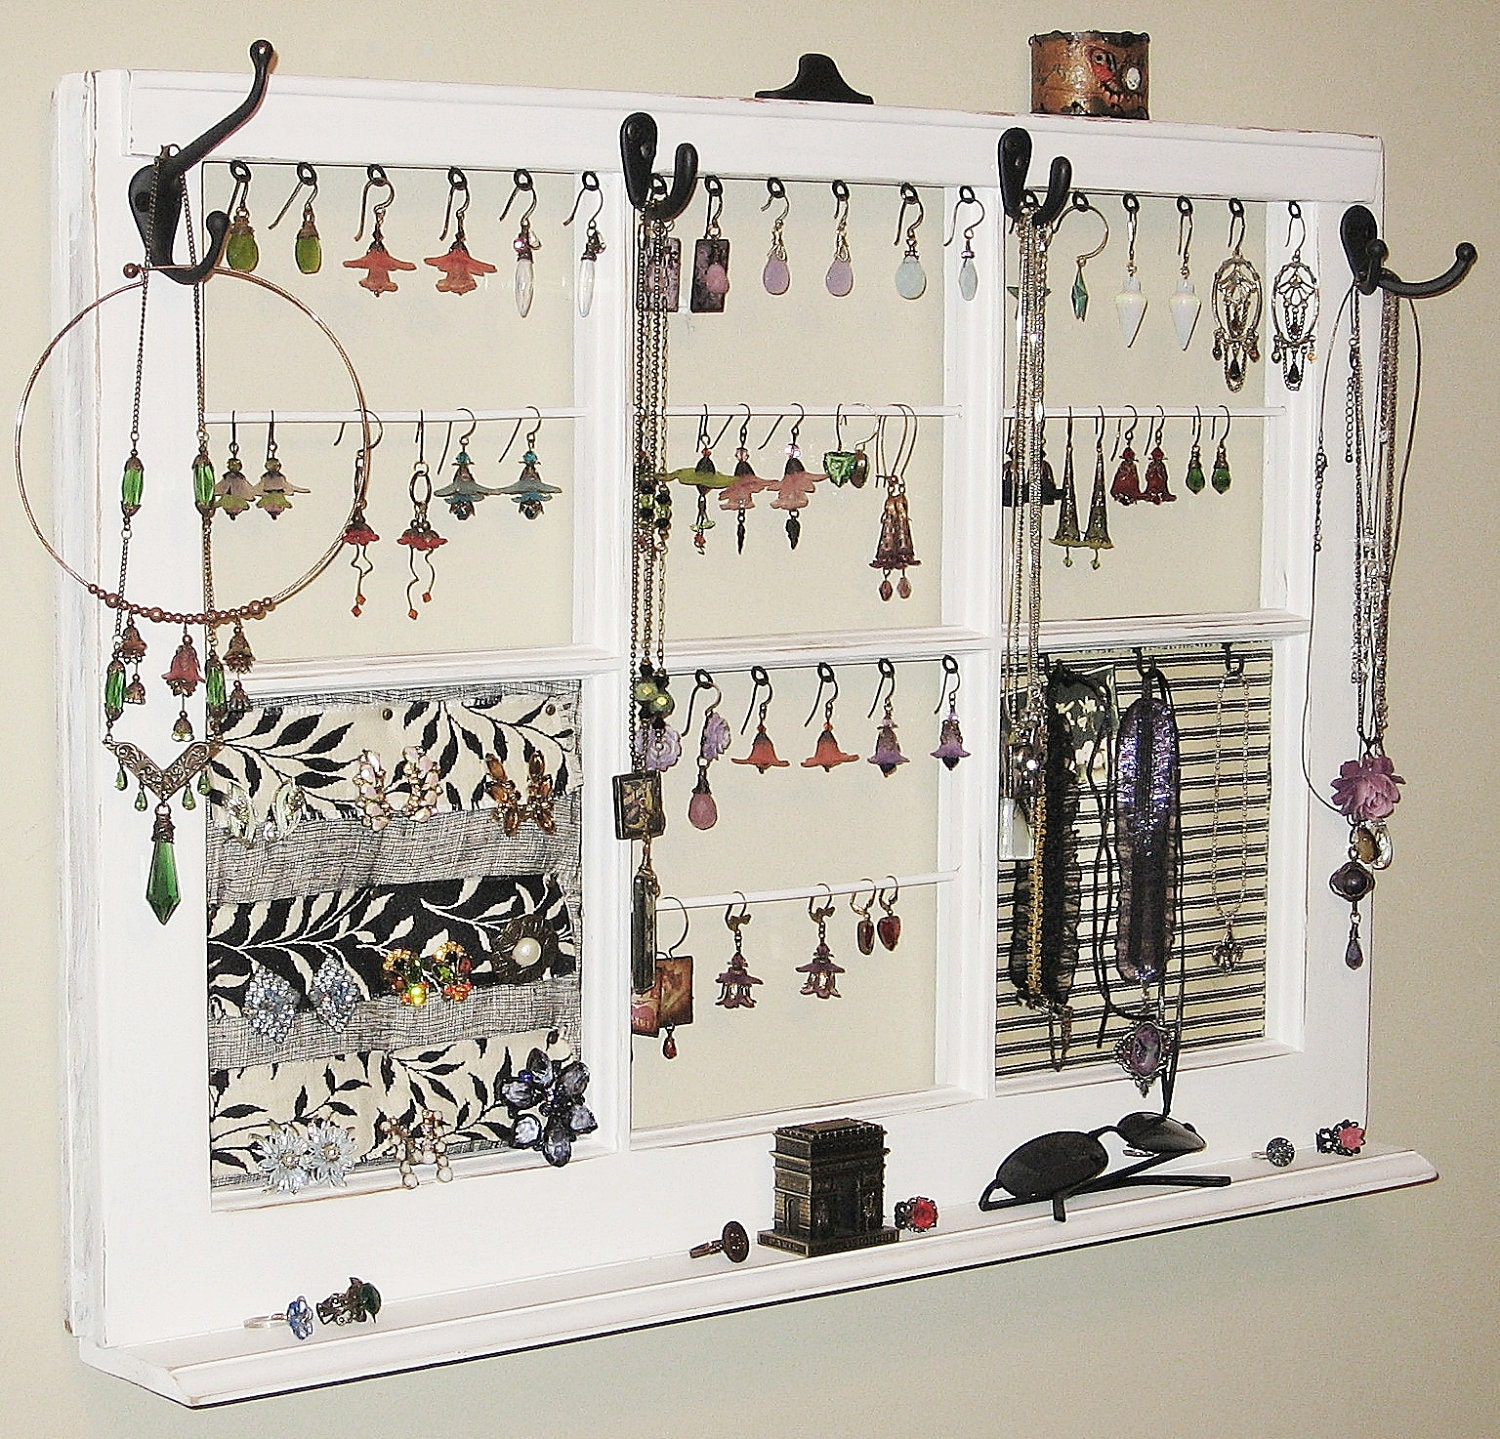 Upcycled Decor Window Frame Wall Hanging Jewelry Organizer - wall hanging photo frames designs